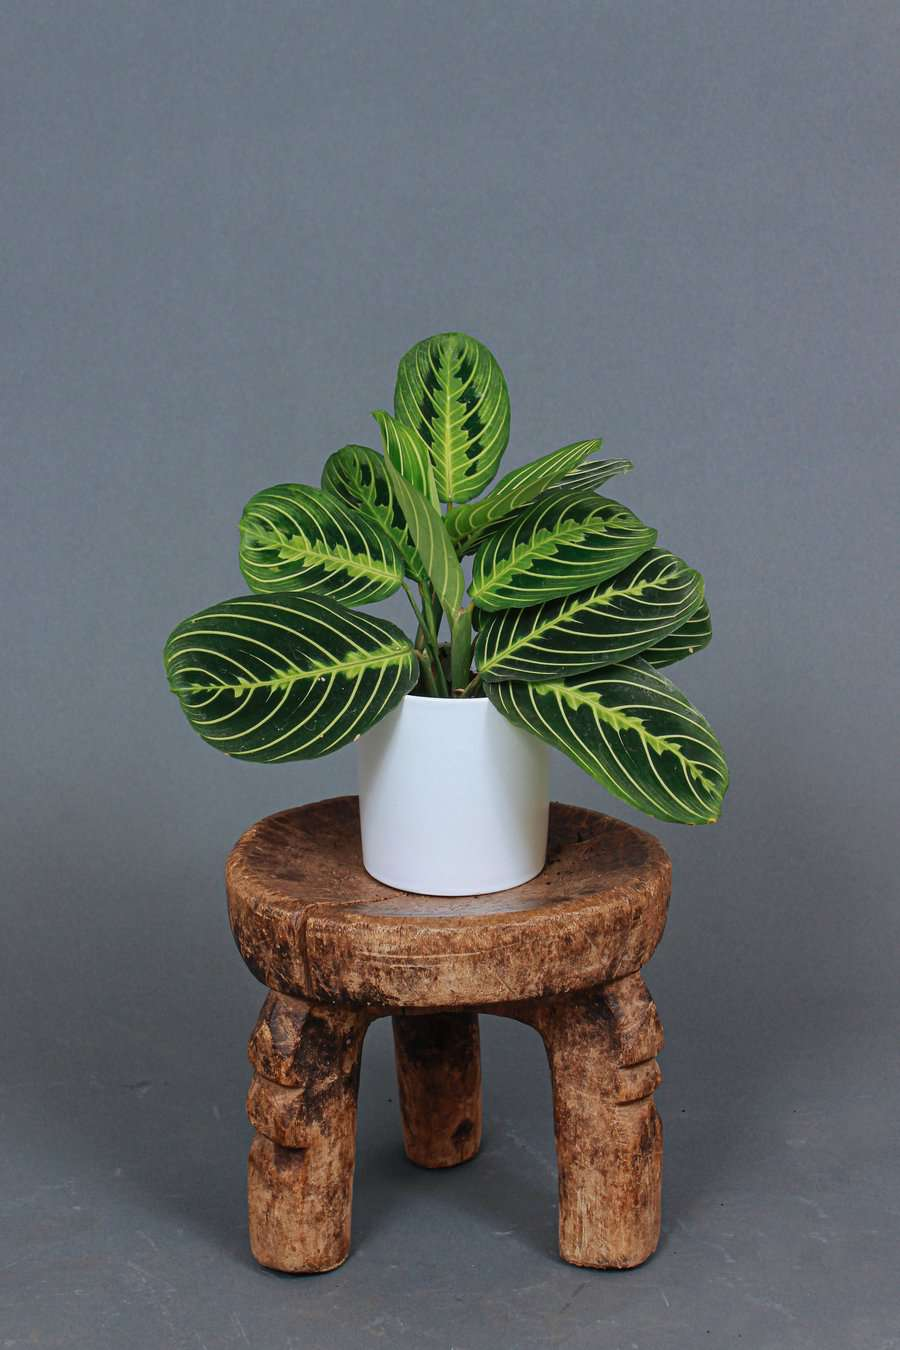 A lemon-lime prayer plant, currently for sale at Grounded